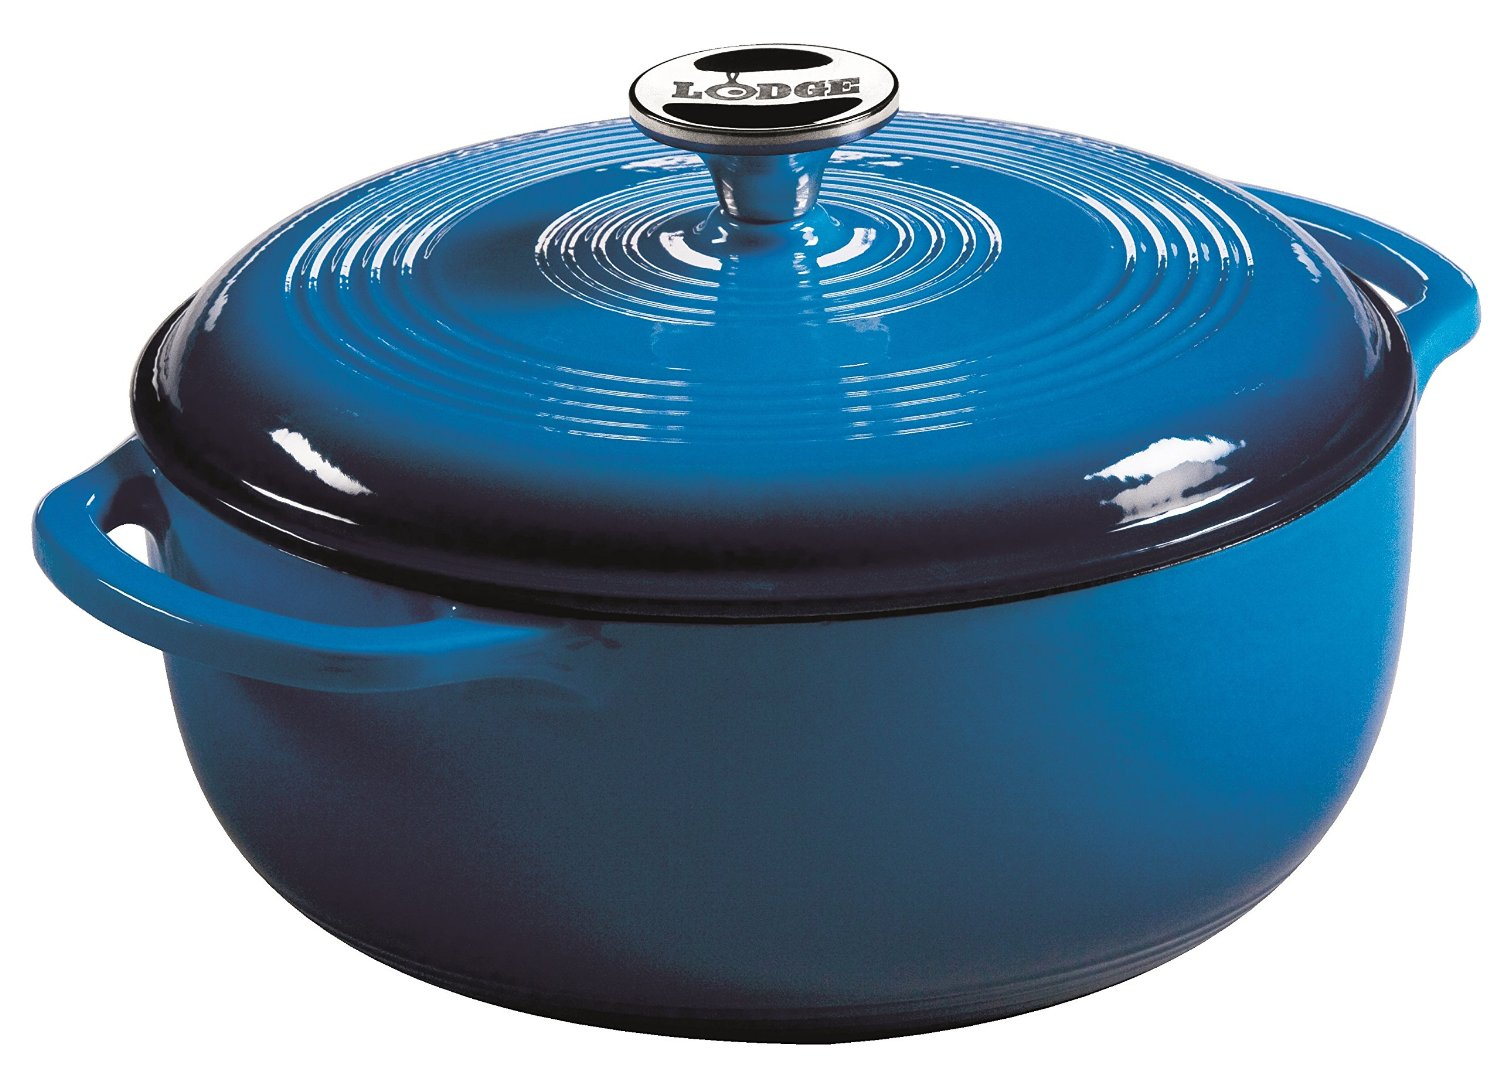 Lodge 4 5 Quart Cast Iron Dutch Oven Only 49 97 30 Off